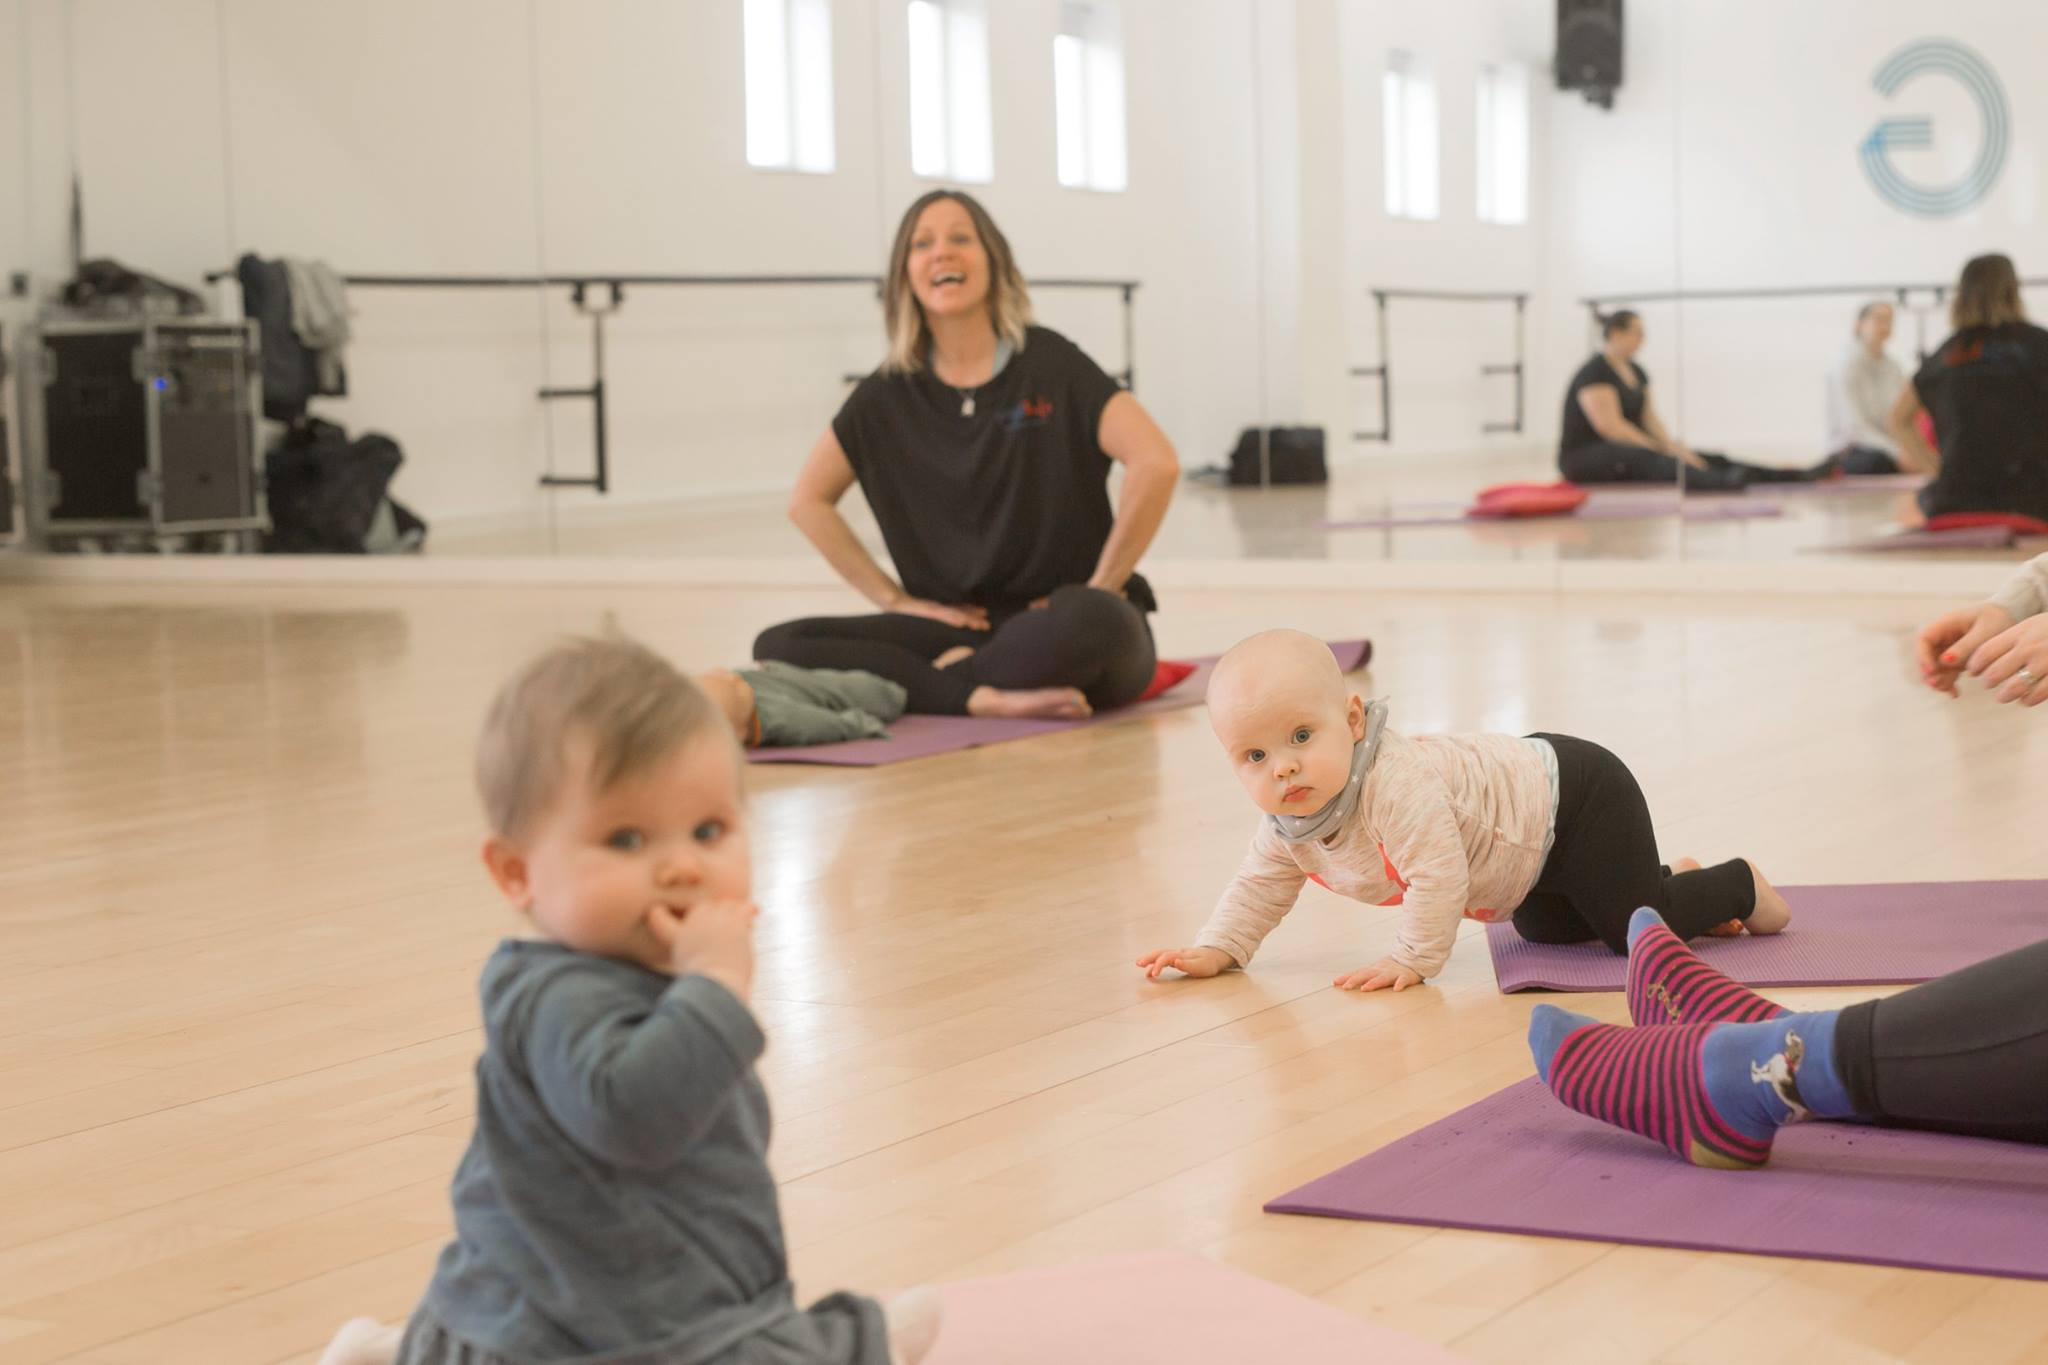 hypnobirthing, pregnancy yoga and baby yoga teacher training - Package includes Hypnobirthing teacher training course, Pregnancy Yoga and Baby Yoga & Massage and Post-Natal teacher training.The ZenMuma Hypnobirthing, Pregnancy Yoga and Baby Yoga & Massage and Post-Natal Yoga course provides you with a professional certification in Hypnobirthing, Pregnancy Yoga and Baby Yoga & Massage and Post-Natal Yoga.135-hour total, nine-day contact training. £1800Learn More.